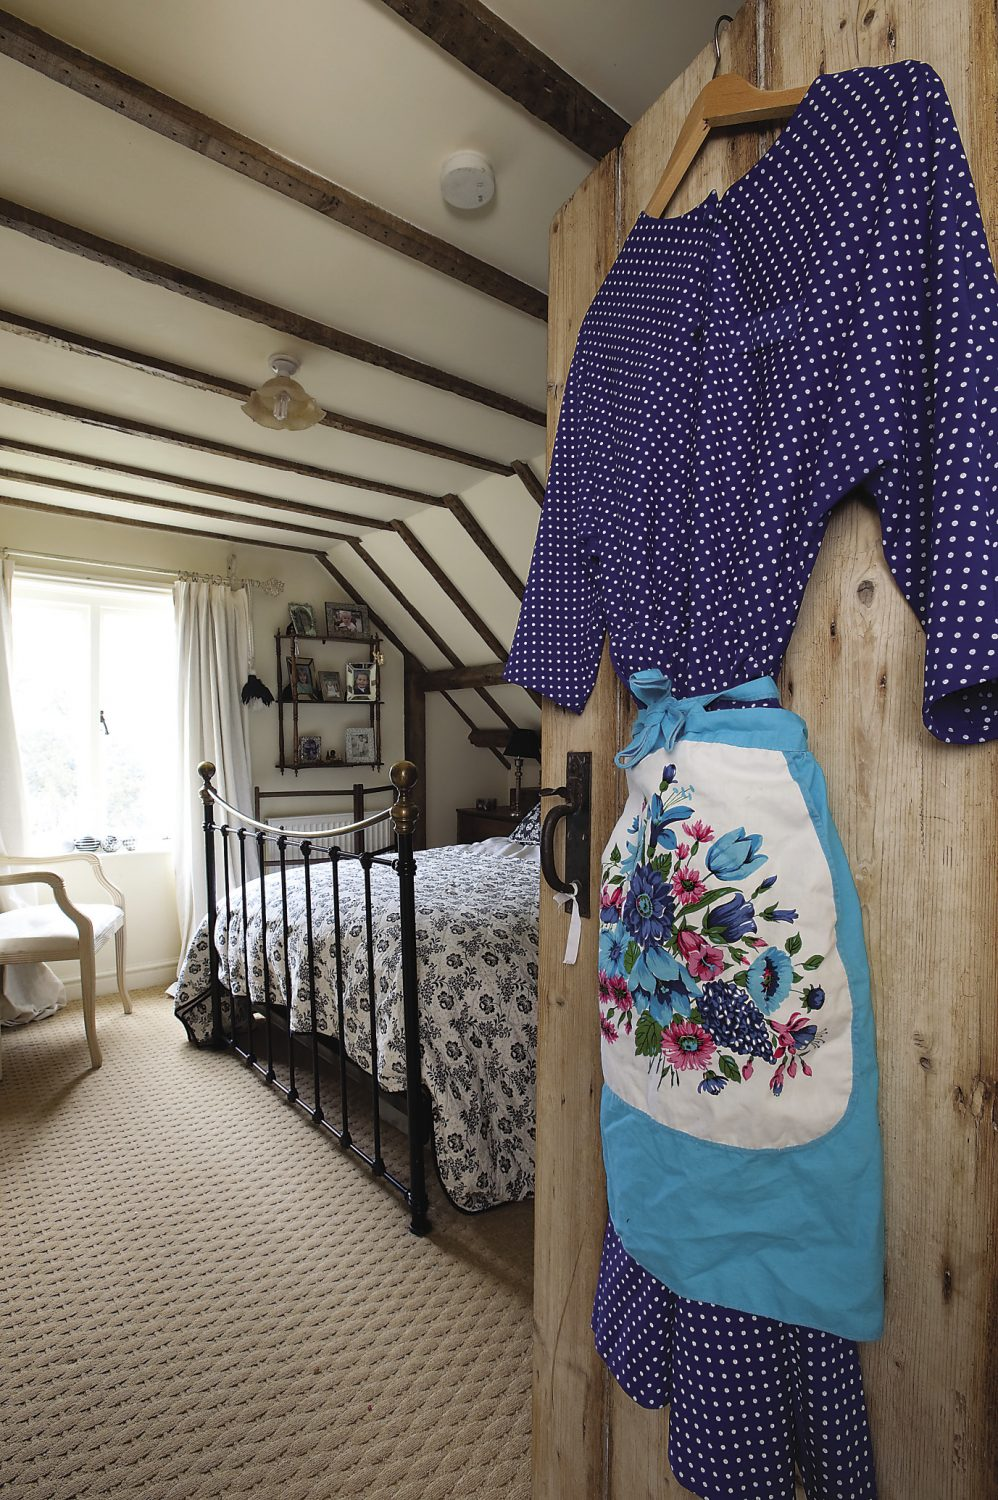 """The master bedroom. On the door hangs a cornflower blue and white spotty dress and 1950s floral apron. """"Pippa and I dress up for Happy Hampers,"""" laughs Stella. """"You have to go a bit over the top though, because if you do it half-heartedly people don't get that it's vintage, they just think you dress a bit weirdly!"""